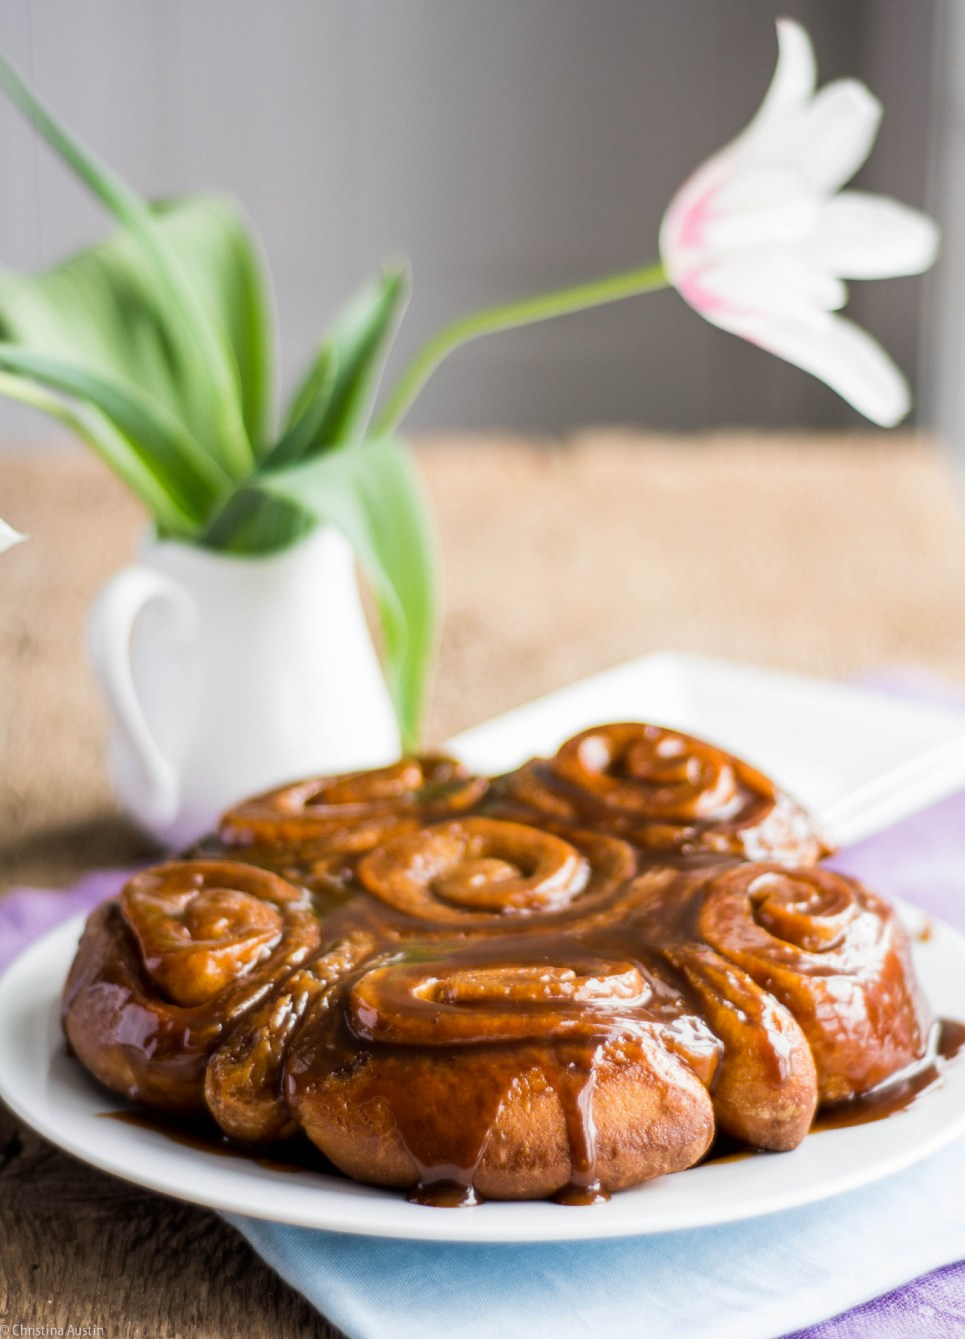 Cinnamon buns with sticky topping